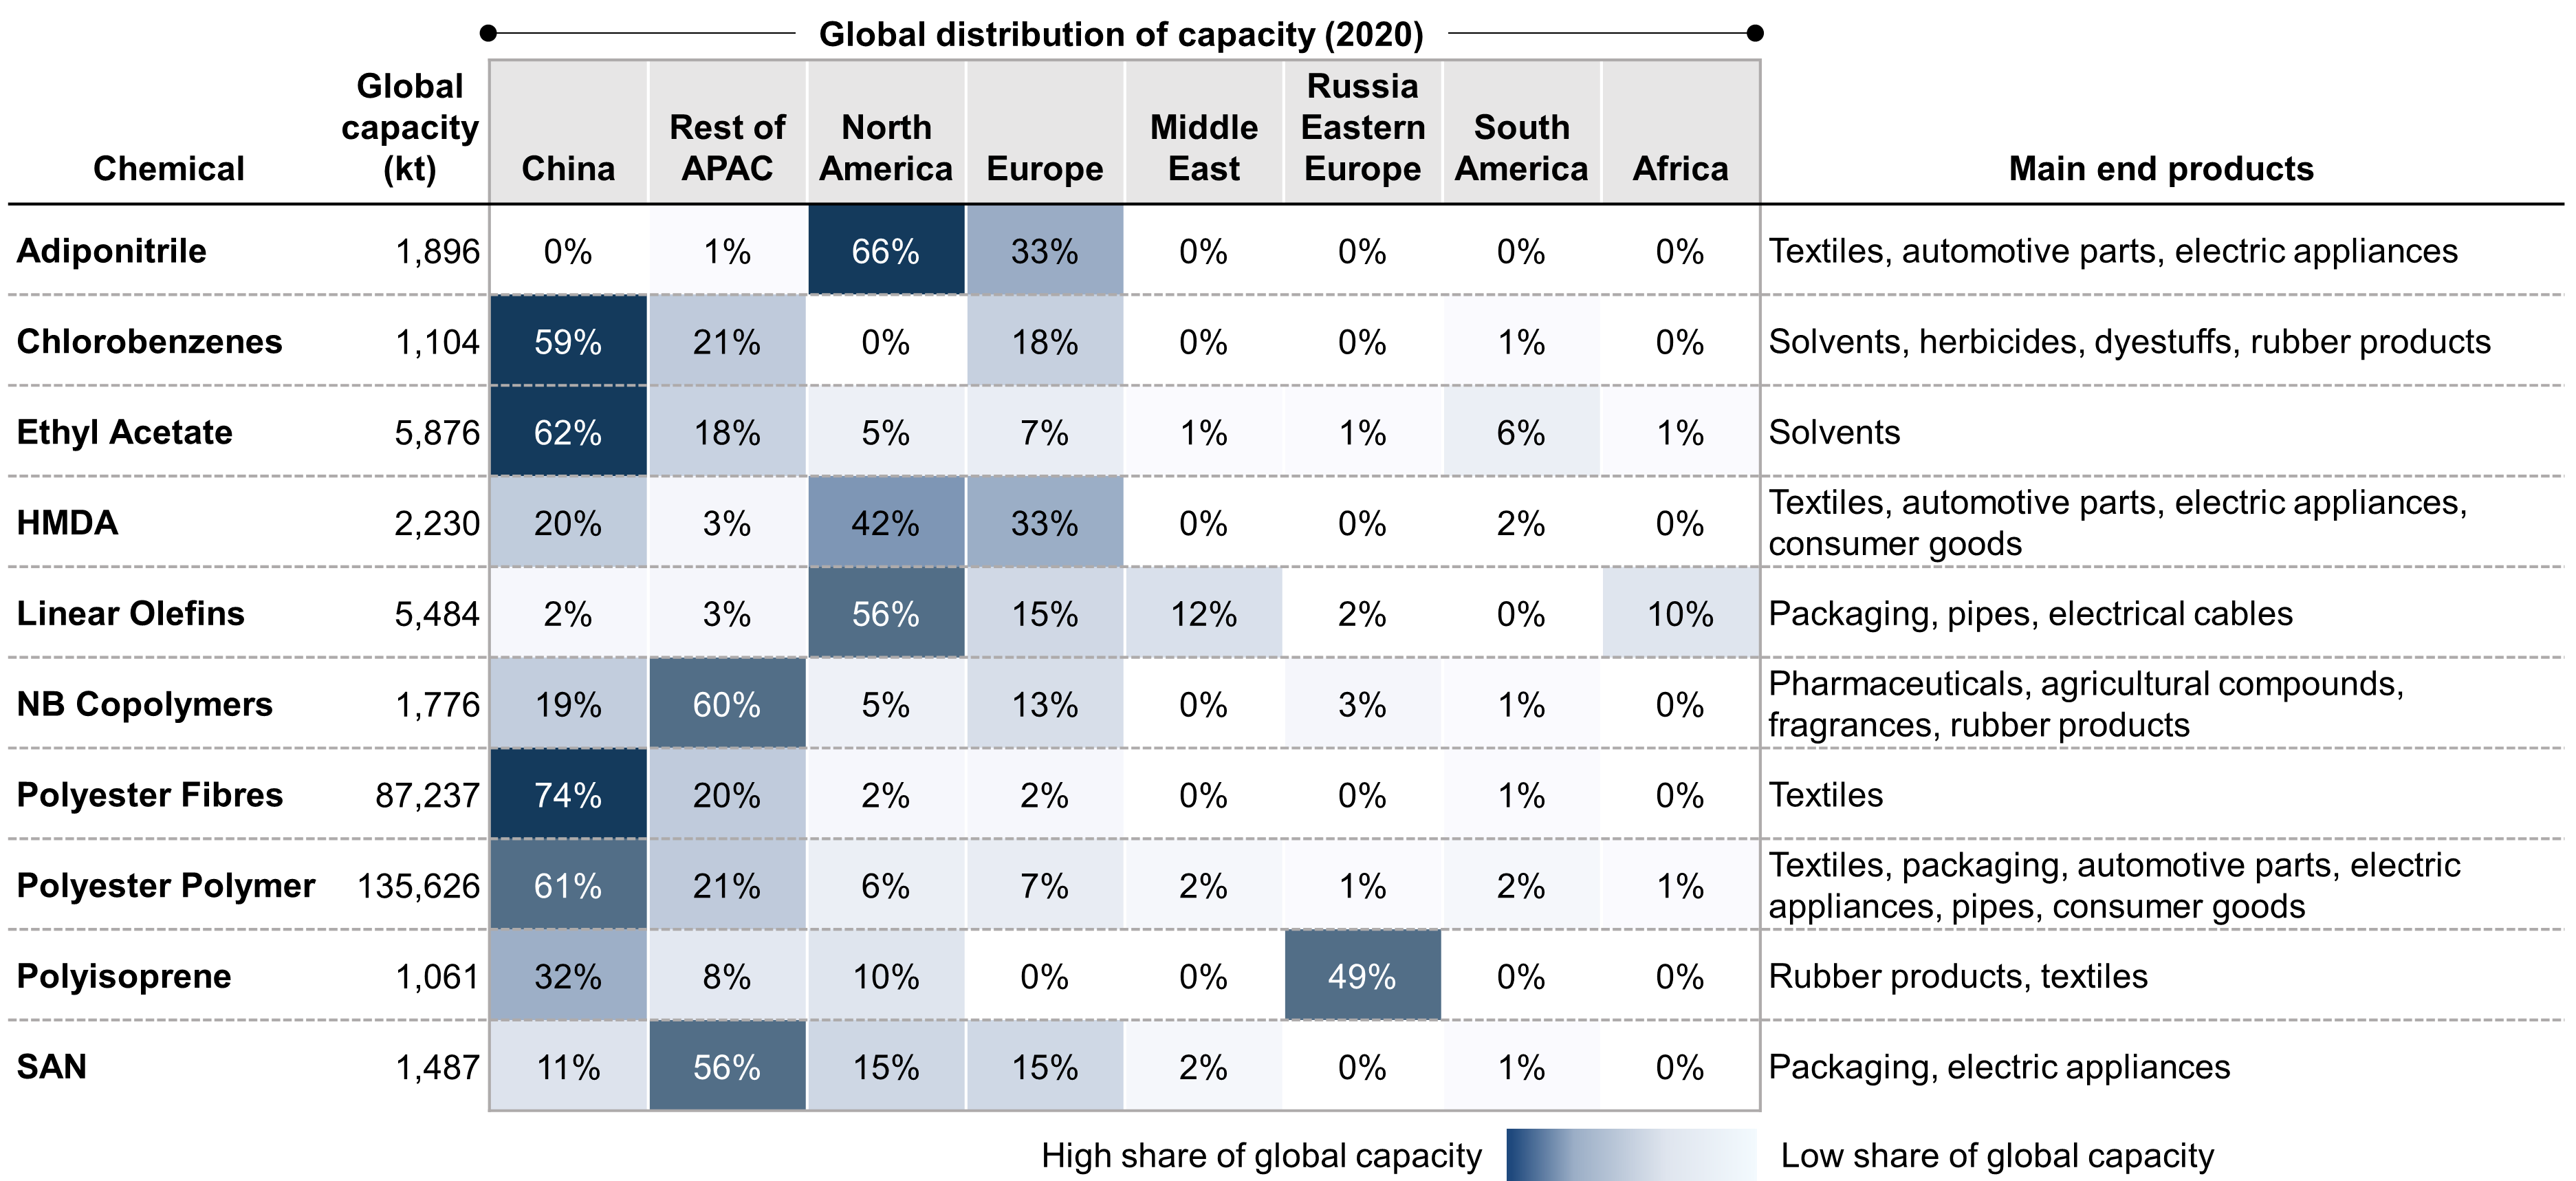 Concentration of capacity for selected chemical product categories